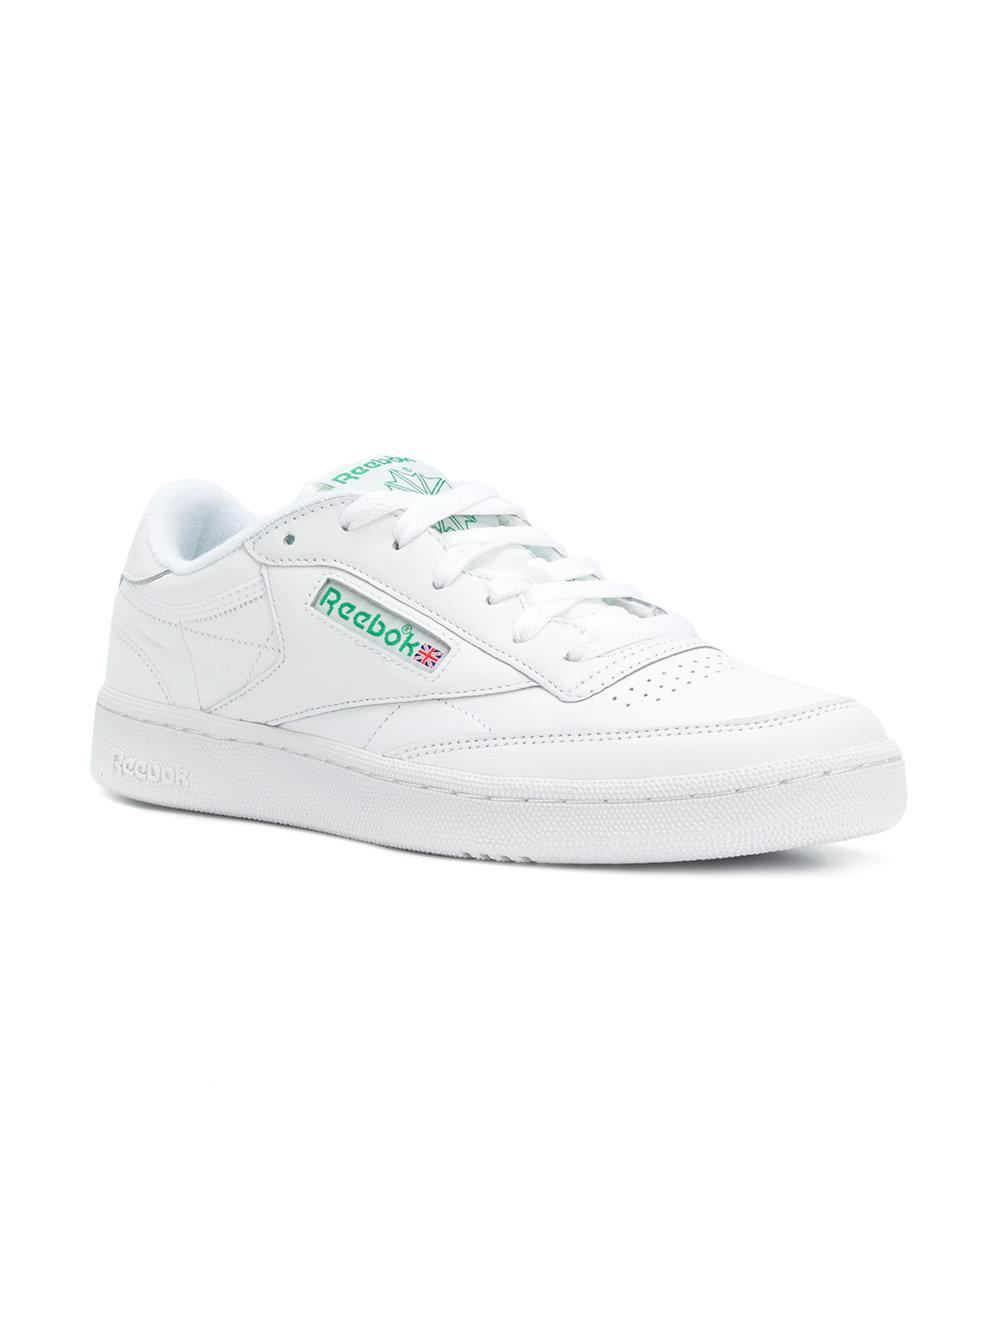 a26fdc44a8a31 Lyst - Reebok Club C 85 Archive Sneakers in White for Men